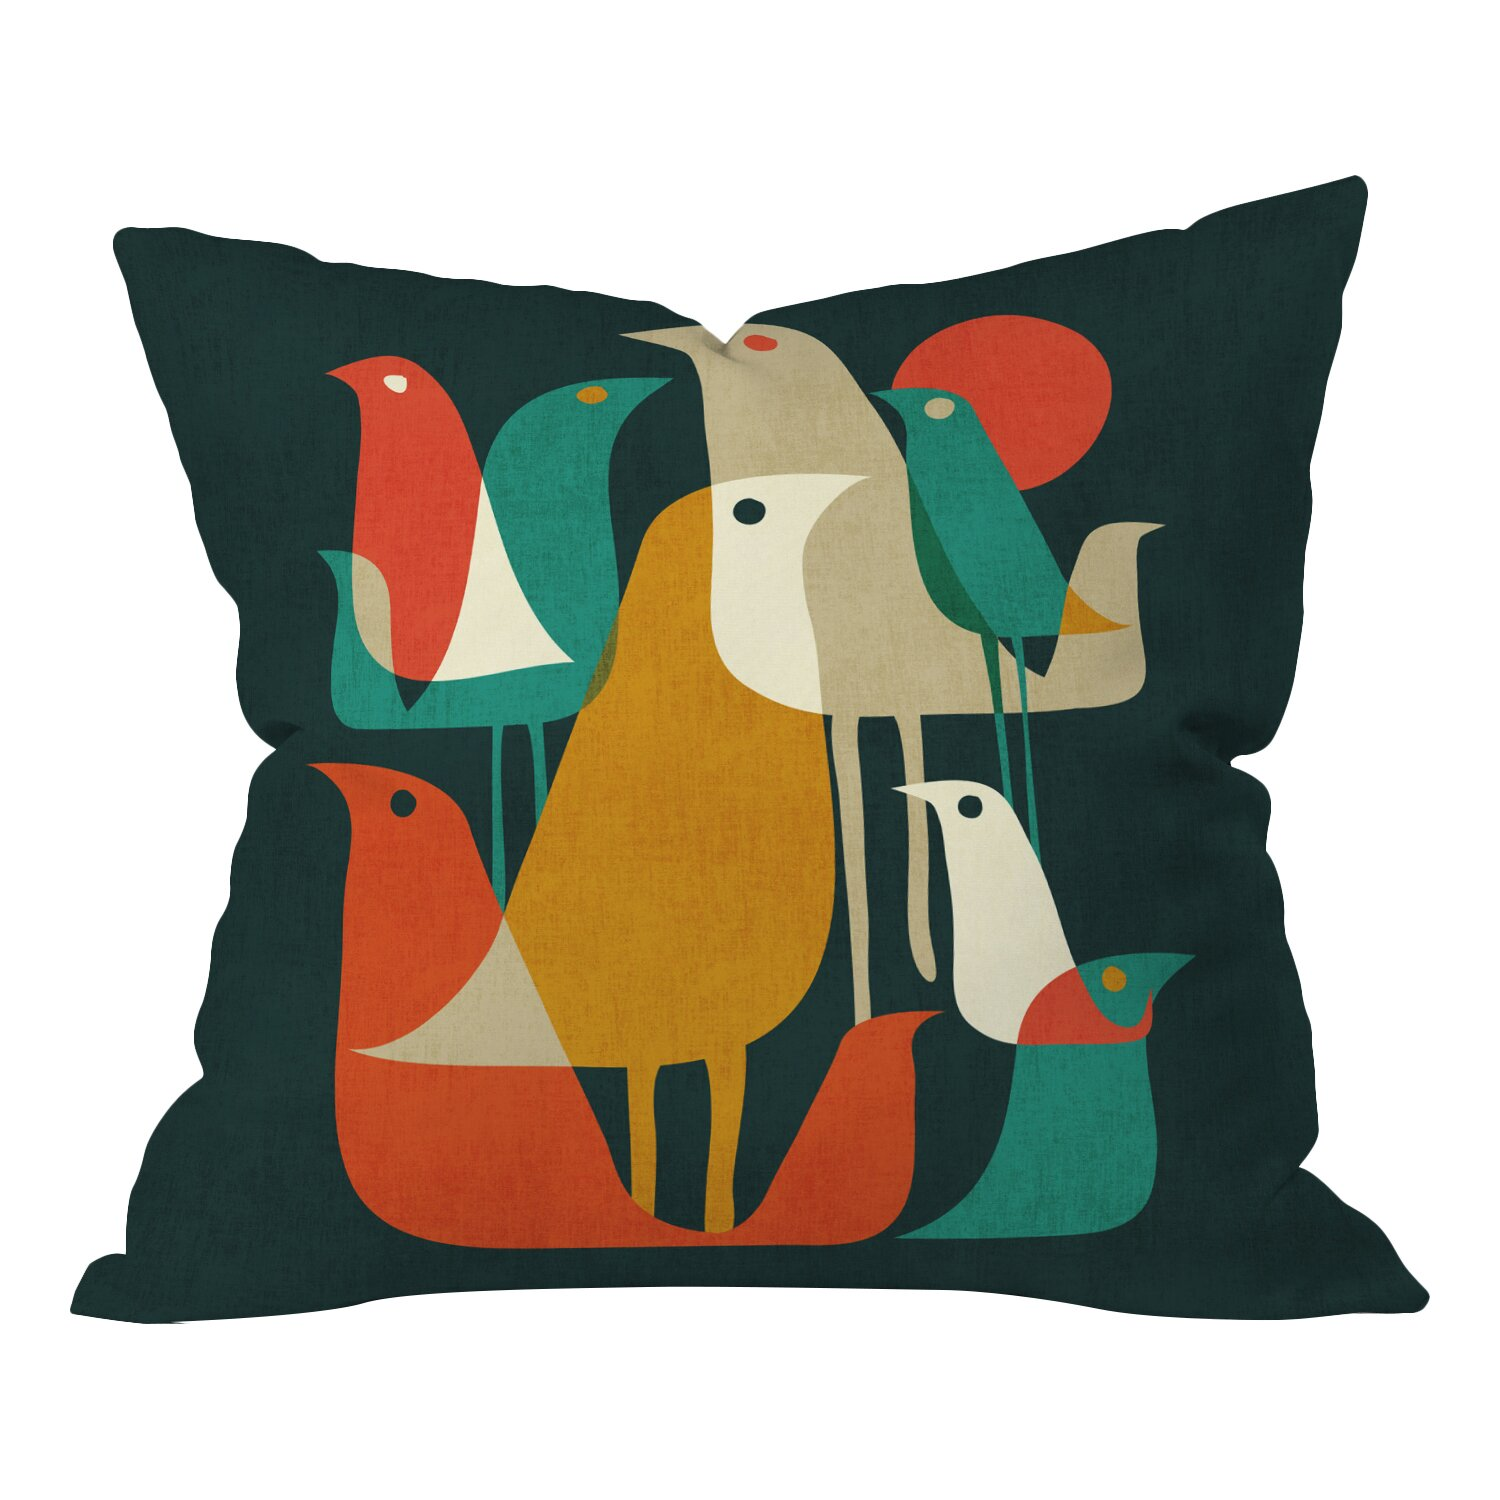 Decorative Pillows With Bird Design : DENY Designs Budi Kwan Flock Of Bird Indoor/Outdoor Throw Pillow & Reviews Wayfair